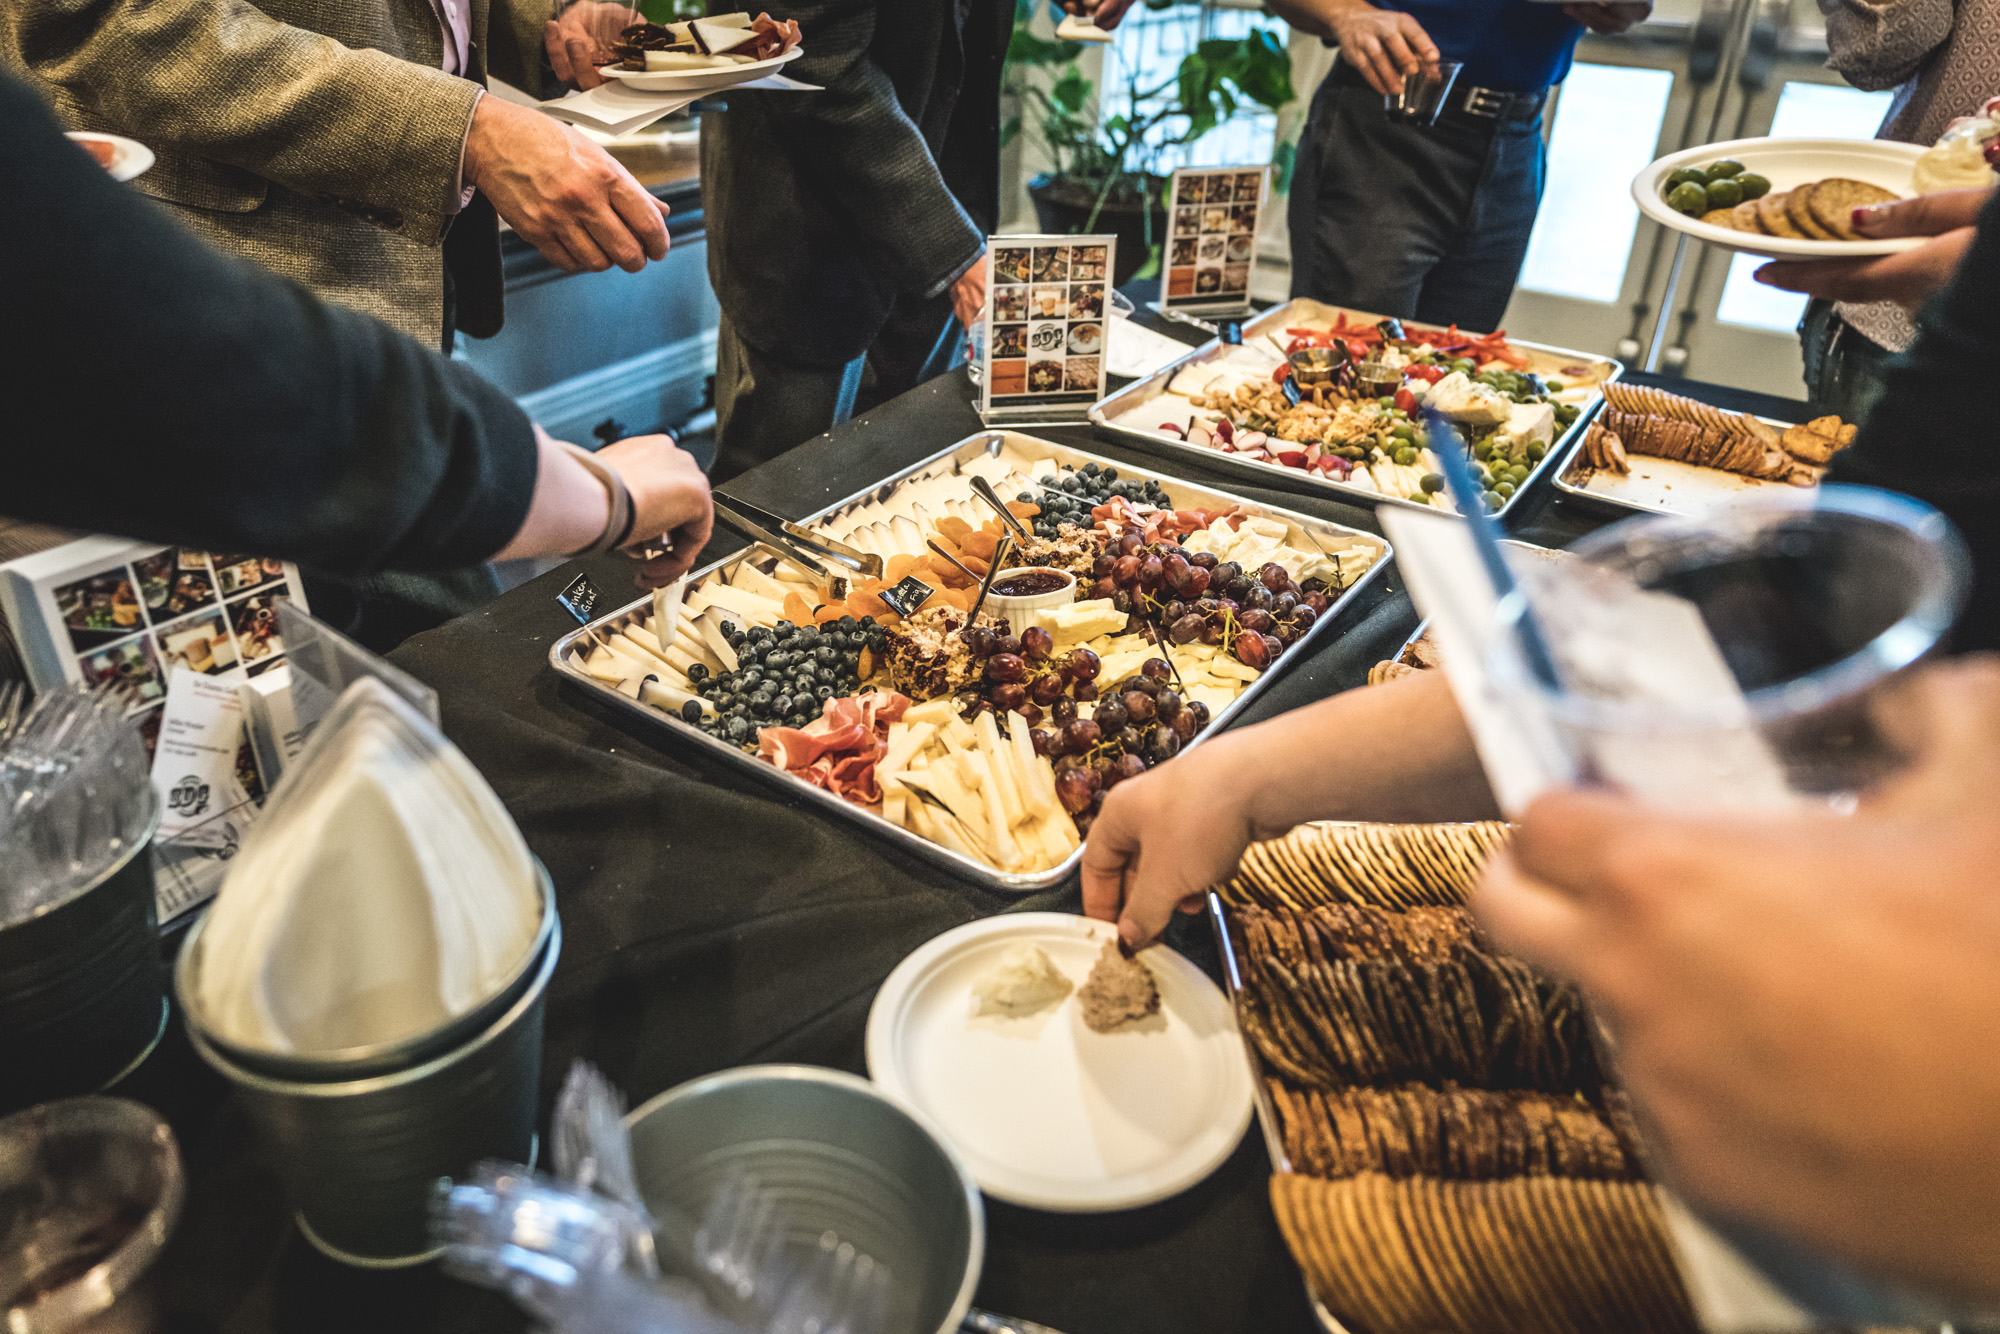 Color photo of beautiful meet and cheese trays on a table as people reach in to grab food. Taken during the Autism Society of Colorado's Wine Competition event in Denver, Colorado